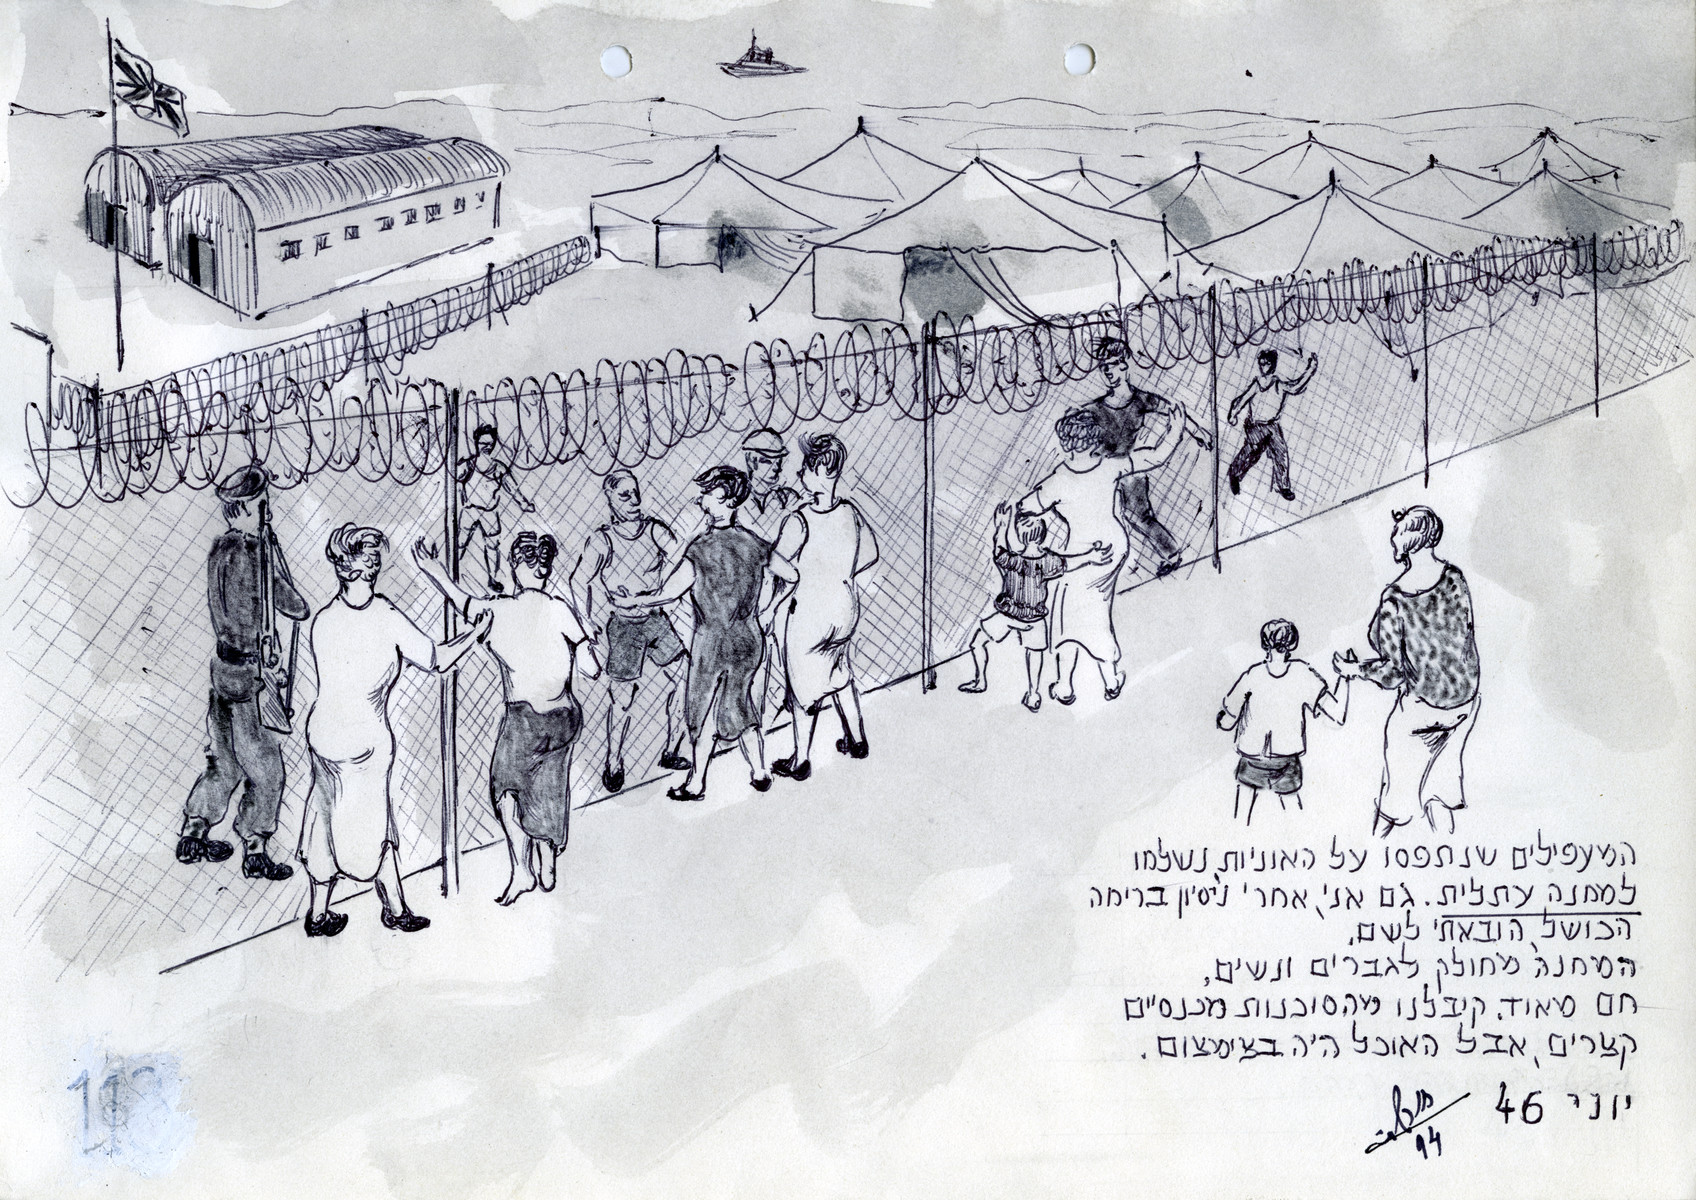 Page of a pictoral memoir drawn by the donor documenting his experiences after the Holocaust.  The drawing depicts Jewish immigrants being held in the Athlit detention center and segretated by gender.